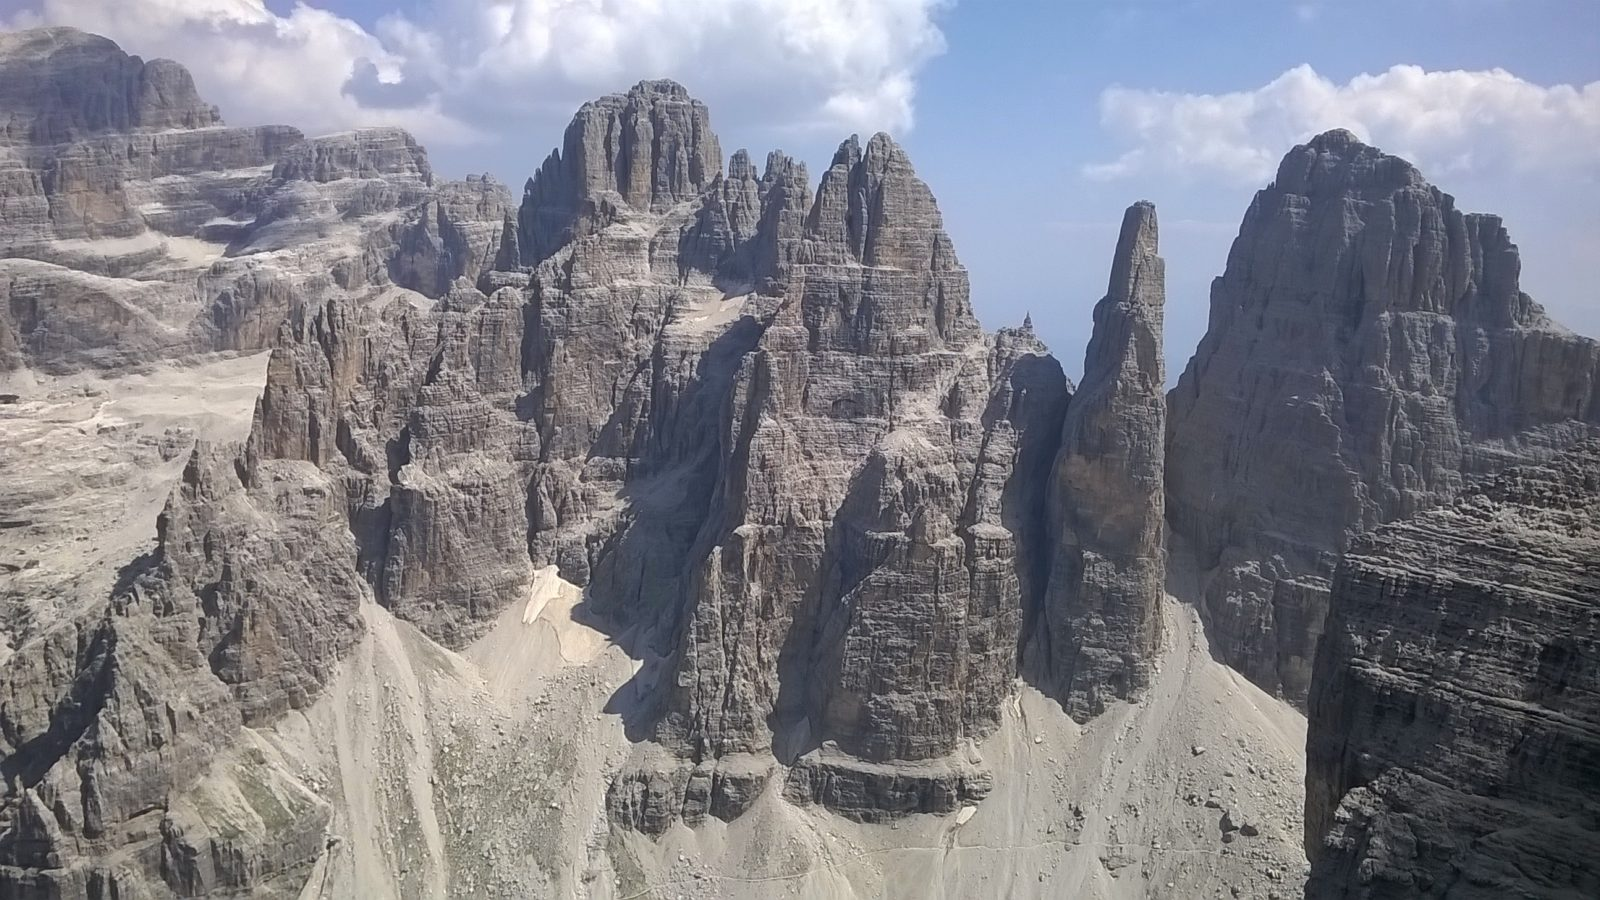 The Core of the Brenta Dolomites there is a path throgh the big rocky towers